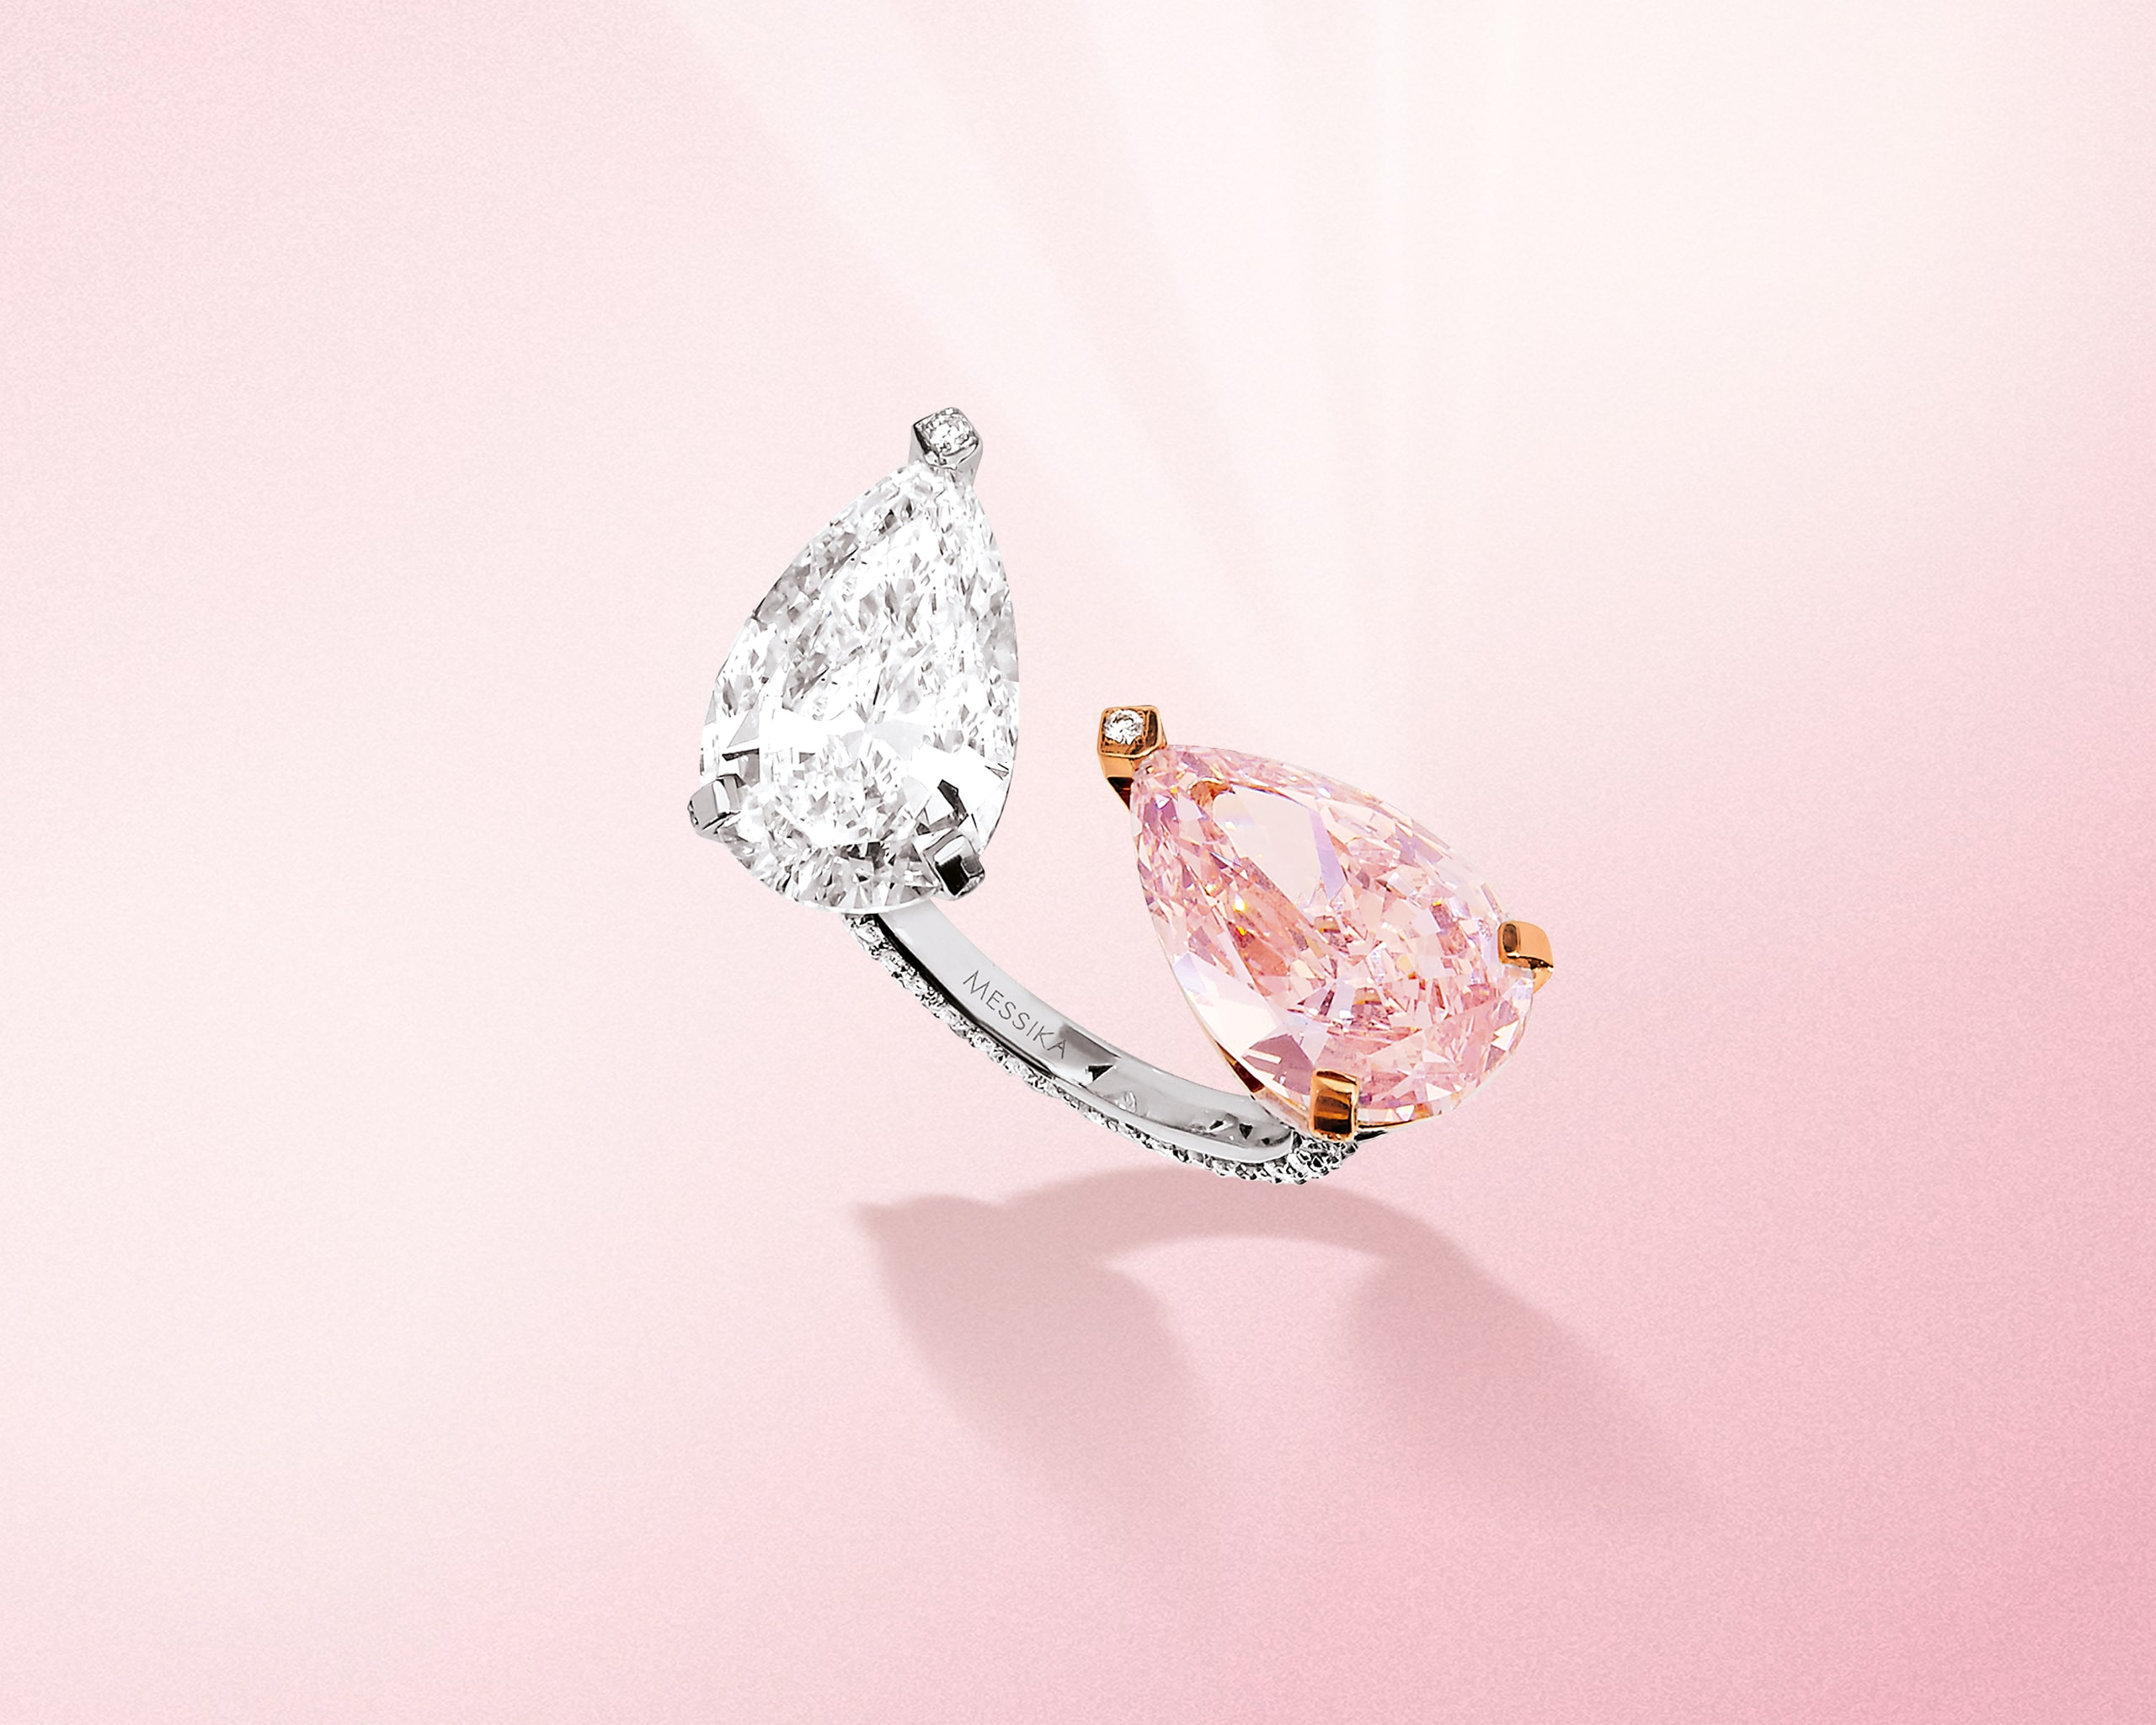 Pear shaped white and pink diamond ring in a toi et moi setting on a platinum band from Messika